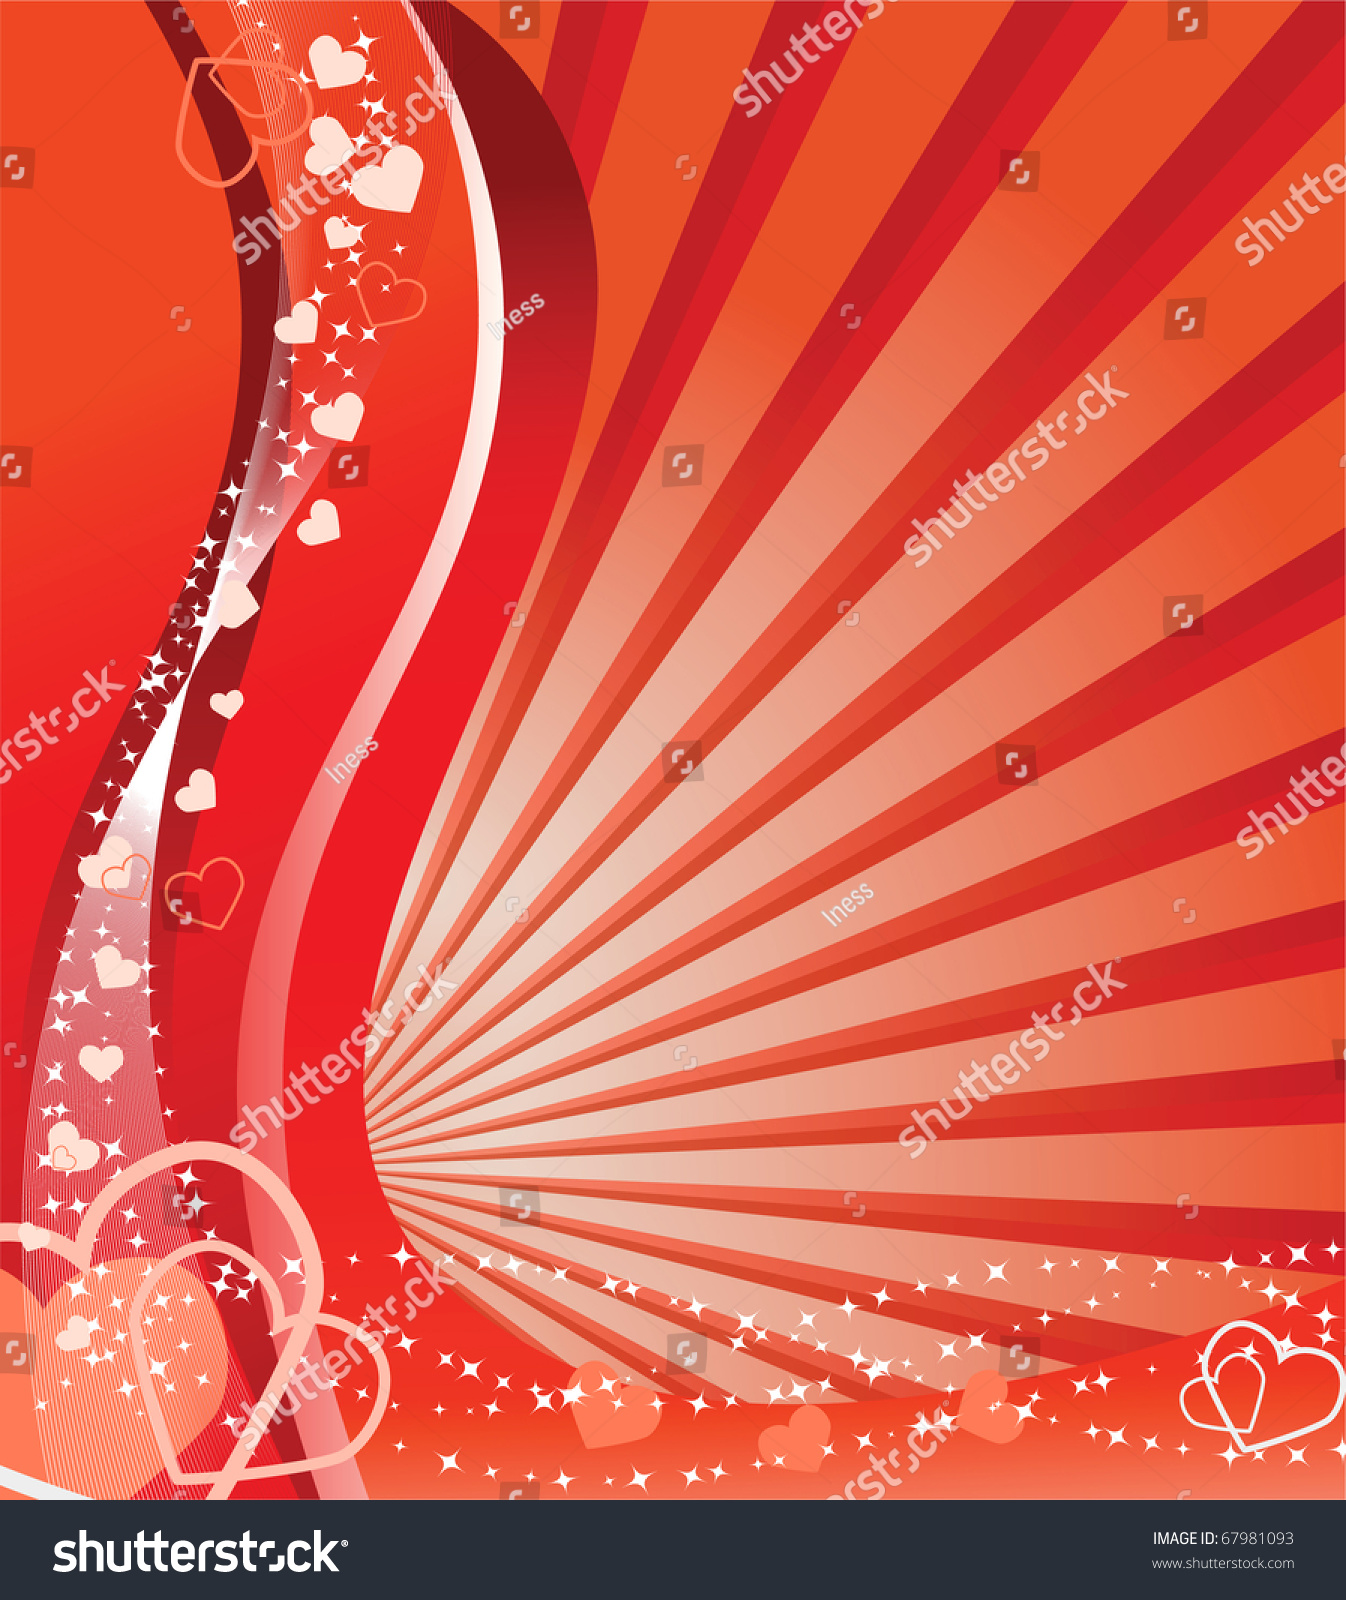 ed valentine background with hearts vector illustration